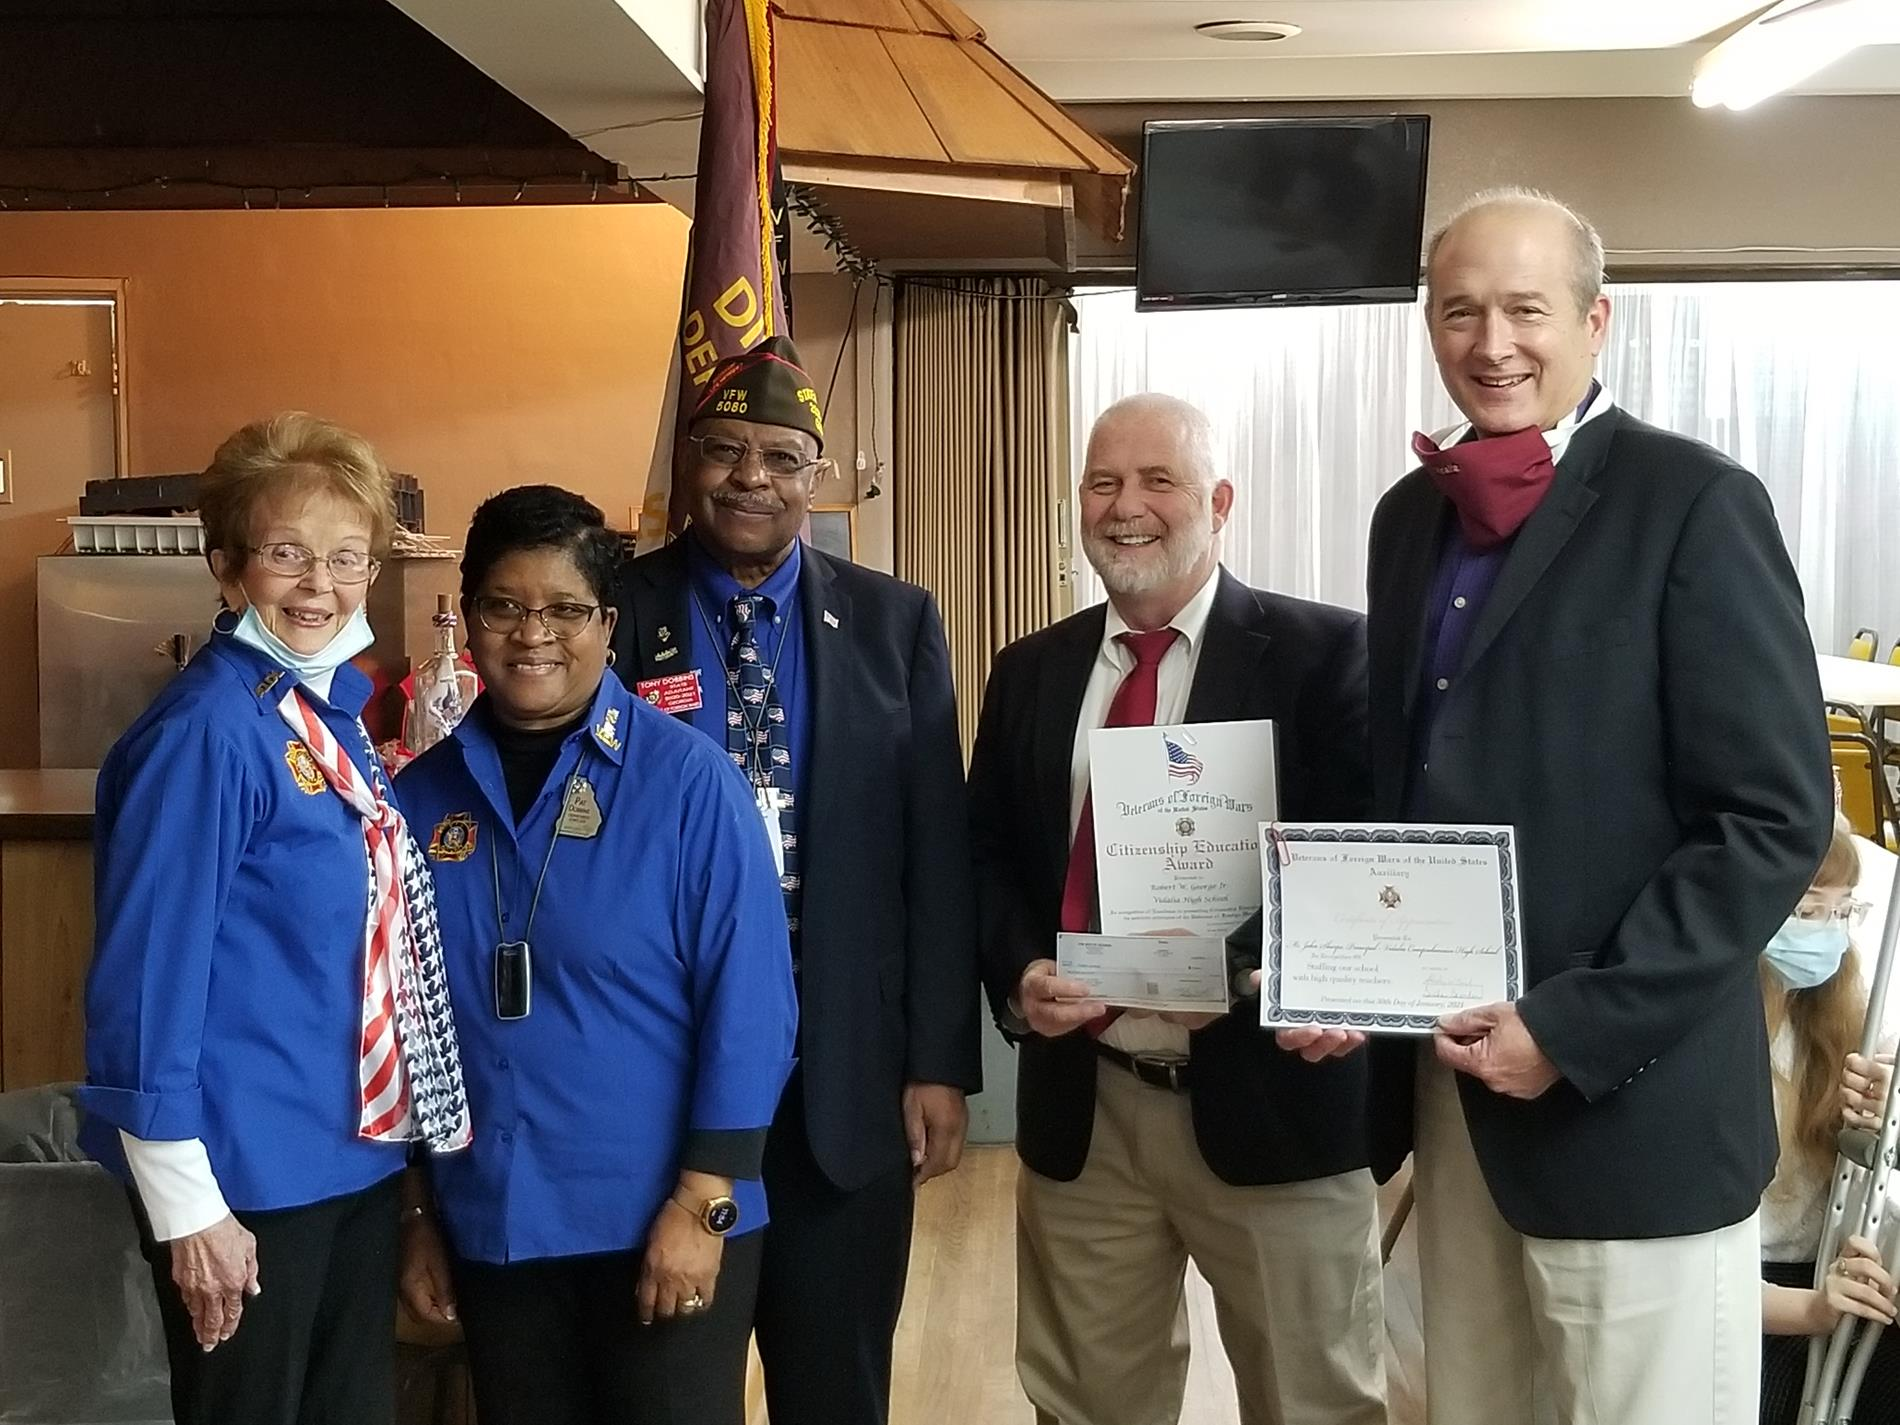 Shirley Curl (VFW Ladies Auxiliary), Pat Dobbins (Department Jr. Vice President), Tony Dobbins (State Adjutant), Bobby George (State VFW Teacher of the Year) and John Sharpe (Principal of Vidalia High School).